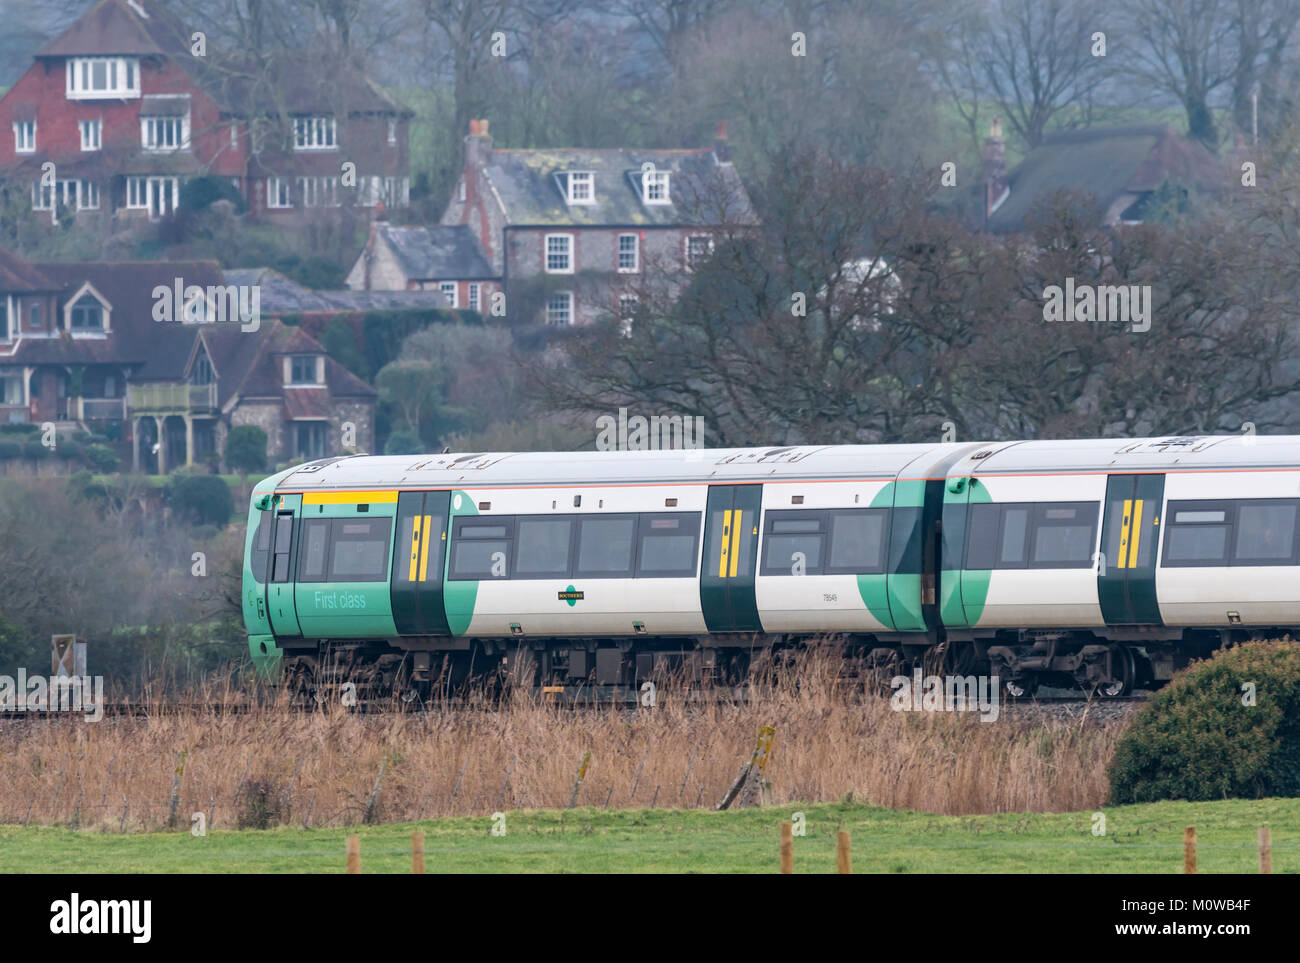 Southern Rail Zug durch die South Downs Arun district Landschaft in West Sussex, England reisen. Reisen mit der Stockbild